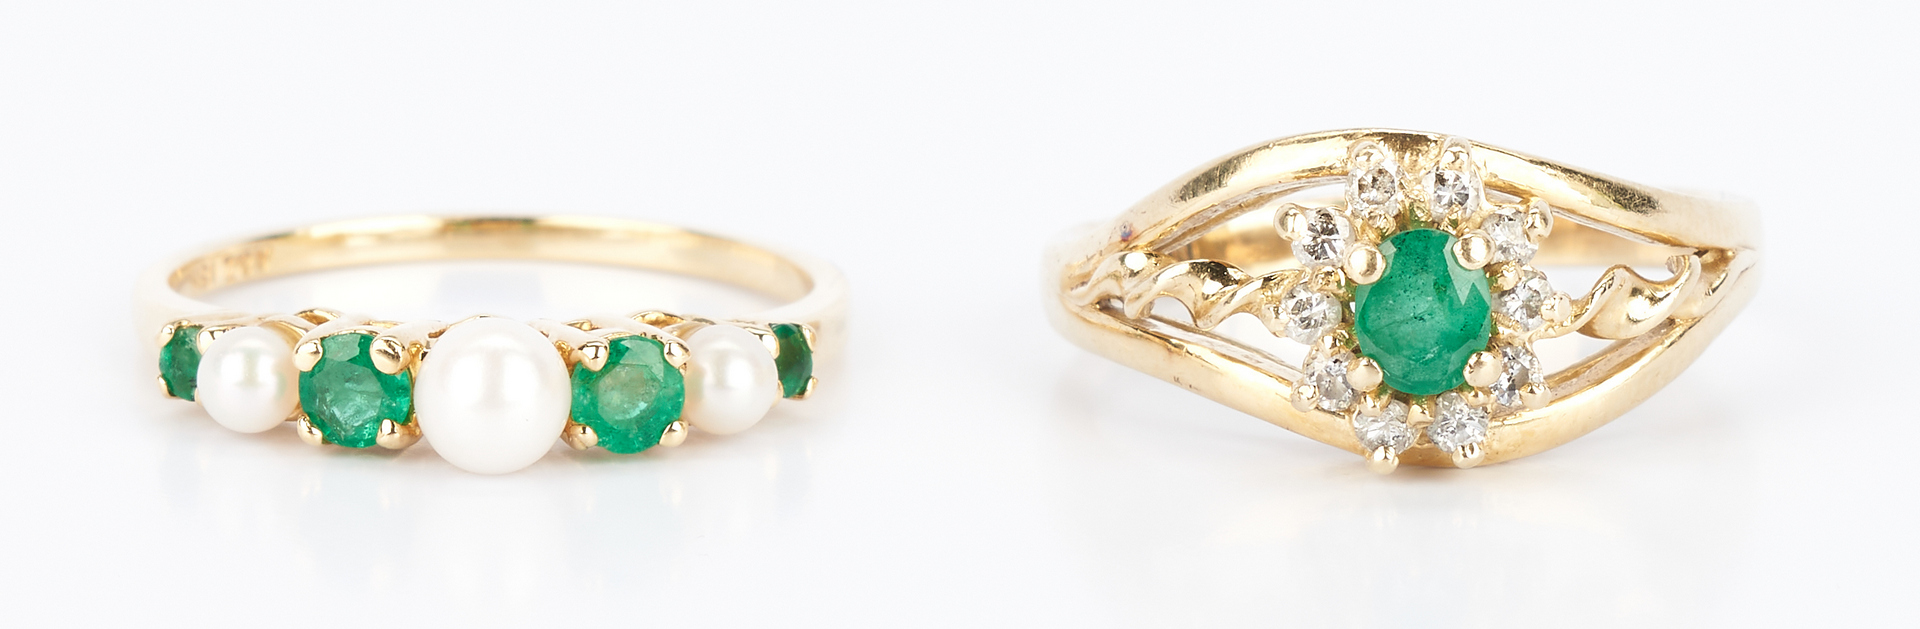 Lot 918: Gold & Emerald Bracelet and Rings